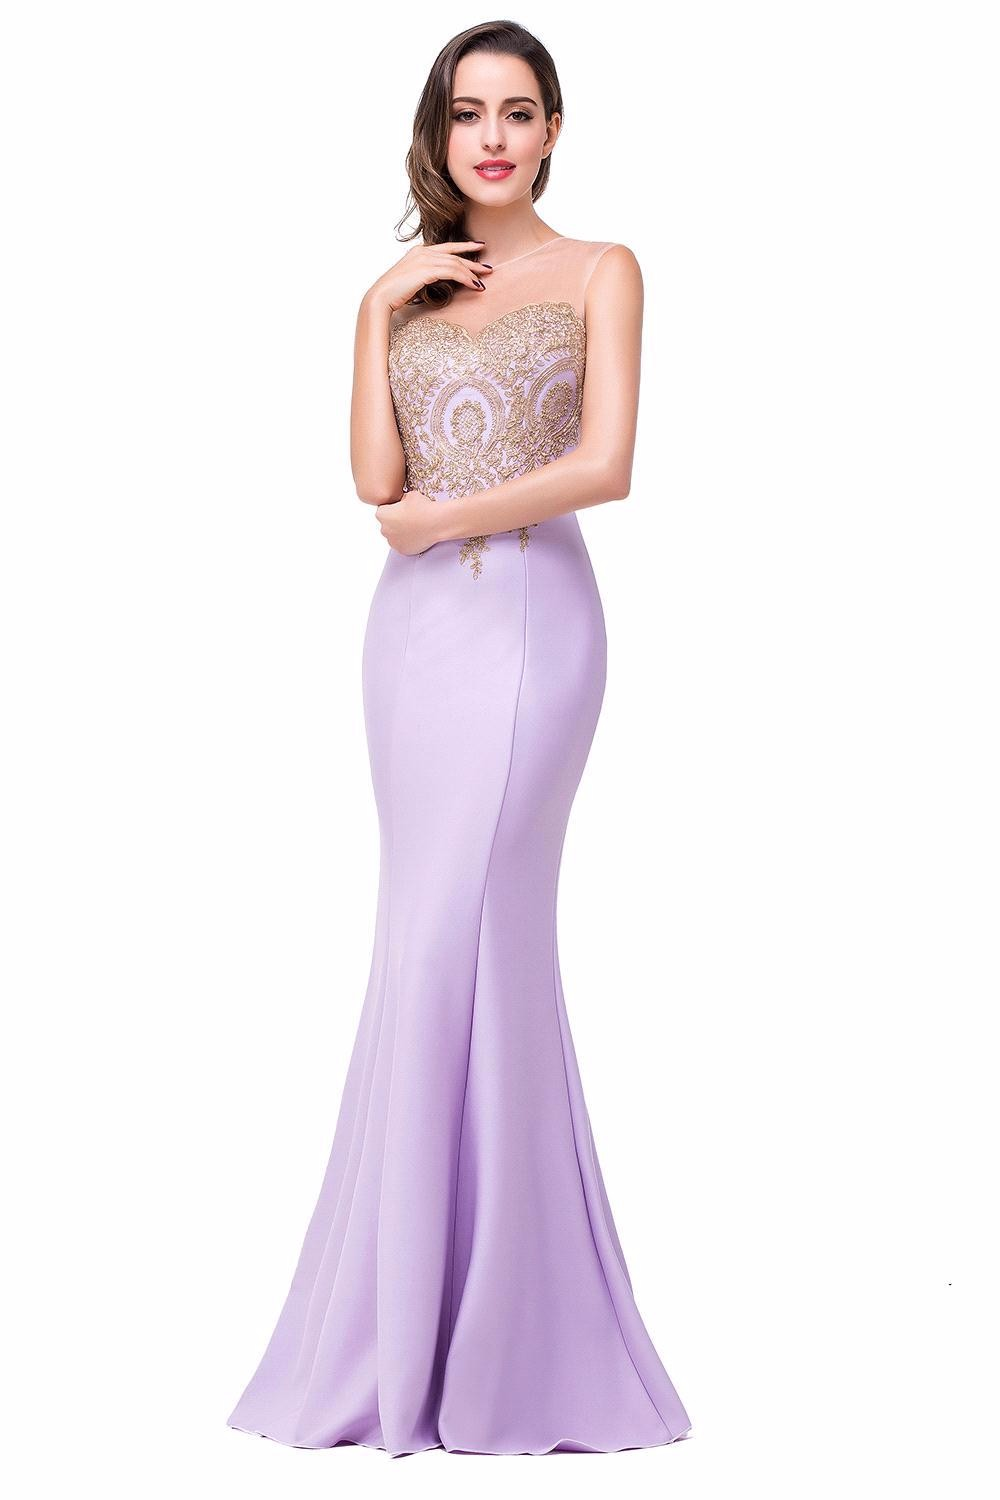 Free shipping elegant gold appliques long mermaid lavender free shipping elegant gold appliques long mermaid lavender bridesmaid dresses burgundy black rose red wedding party dress gd706 in bridesmaid dresses from ombrellifo Image collections